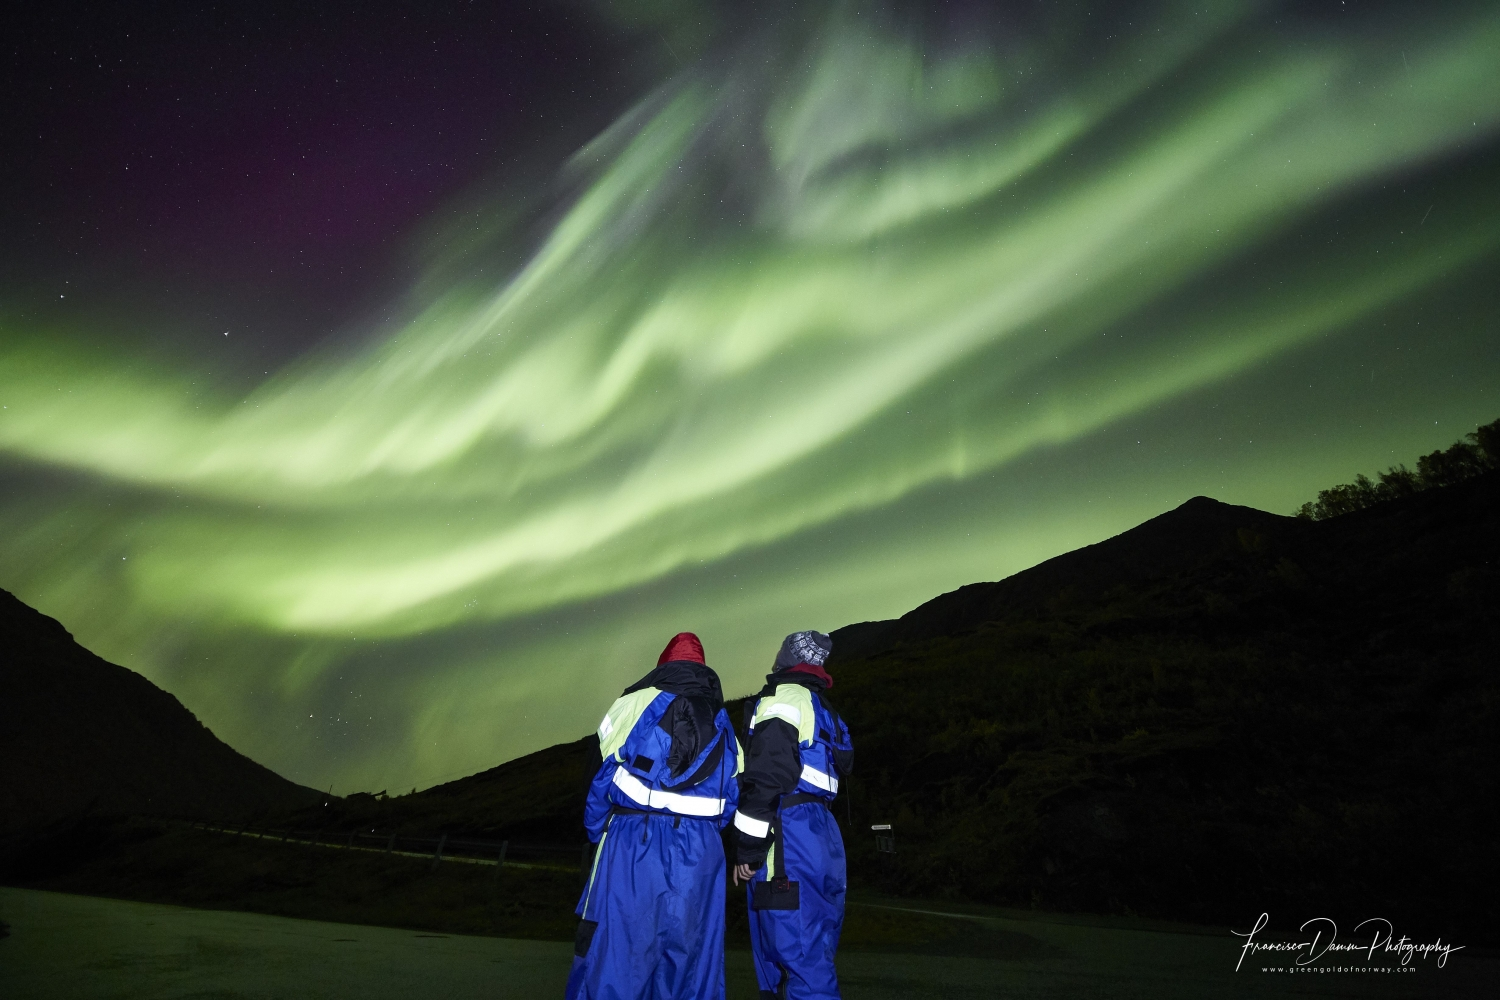 two people whatching the northern lights